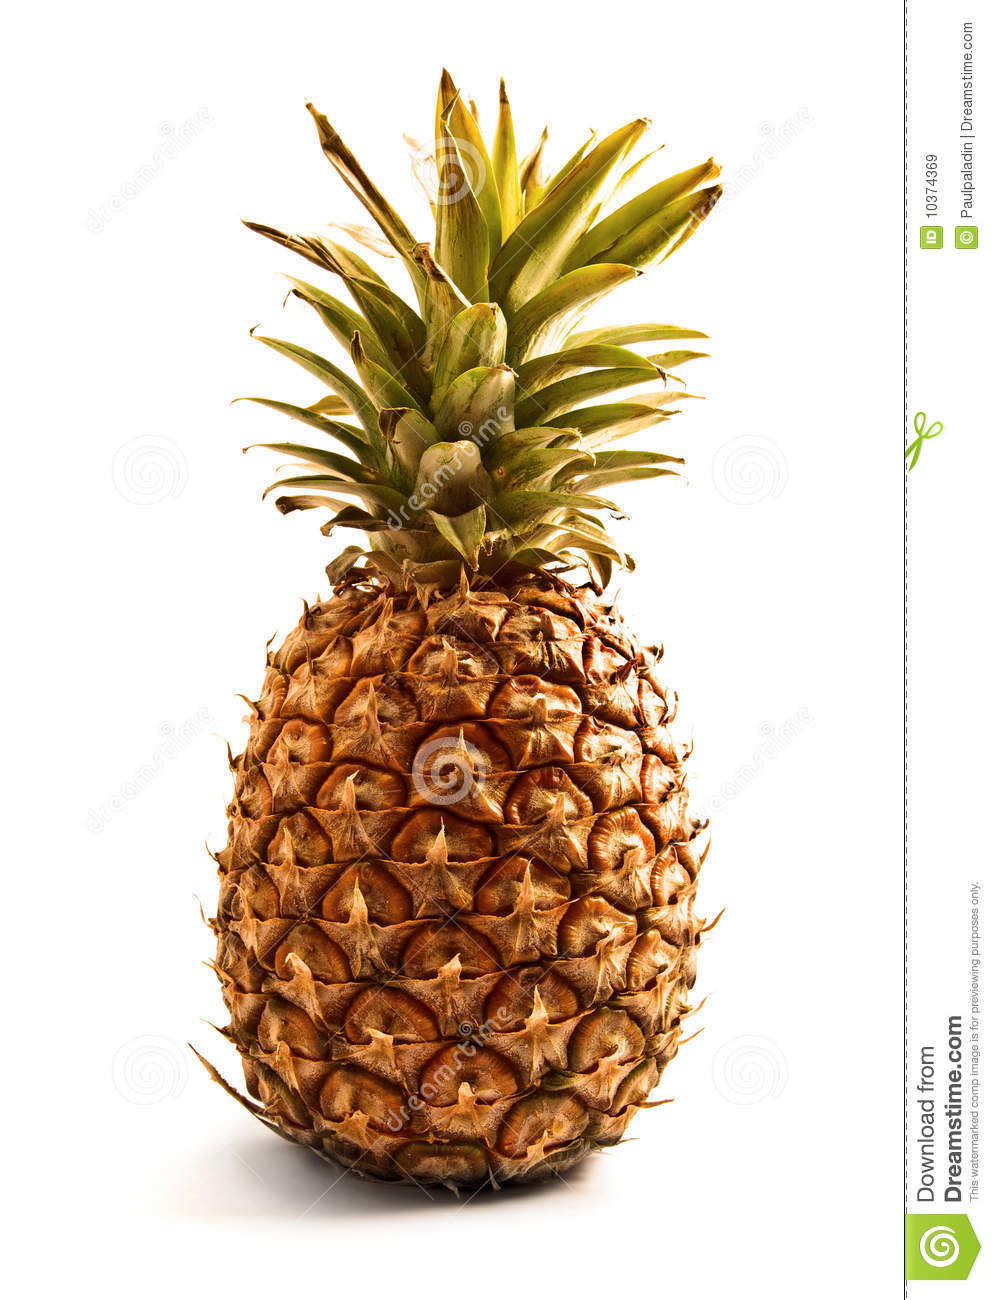 define fruit is pineapple a fruit